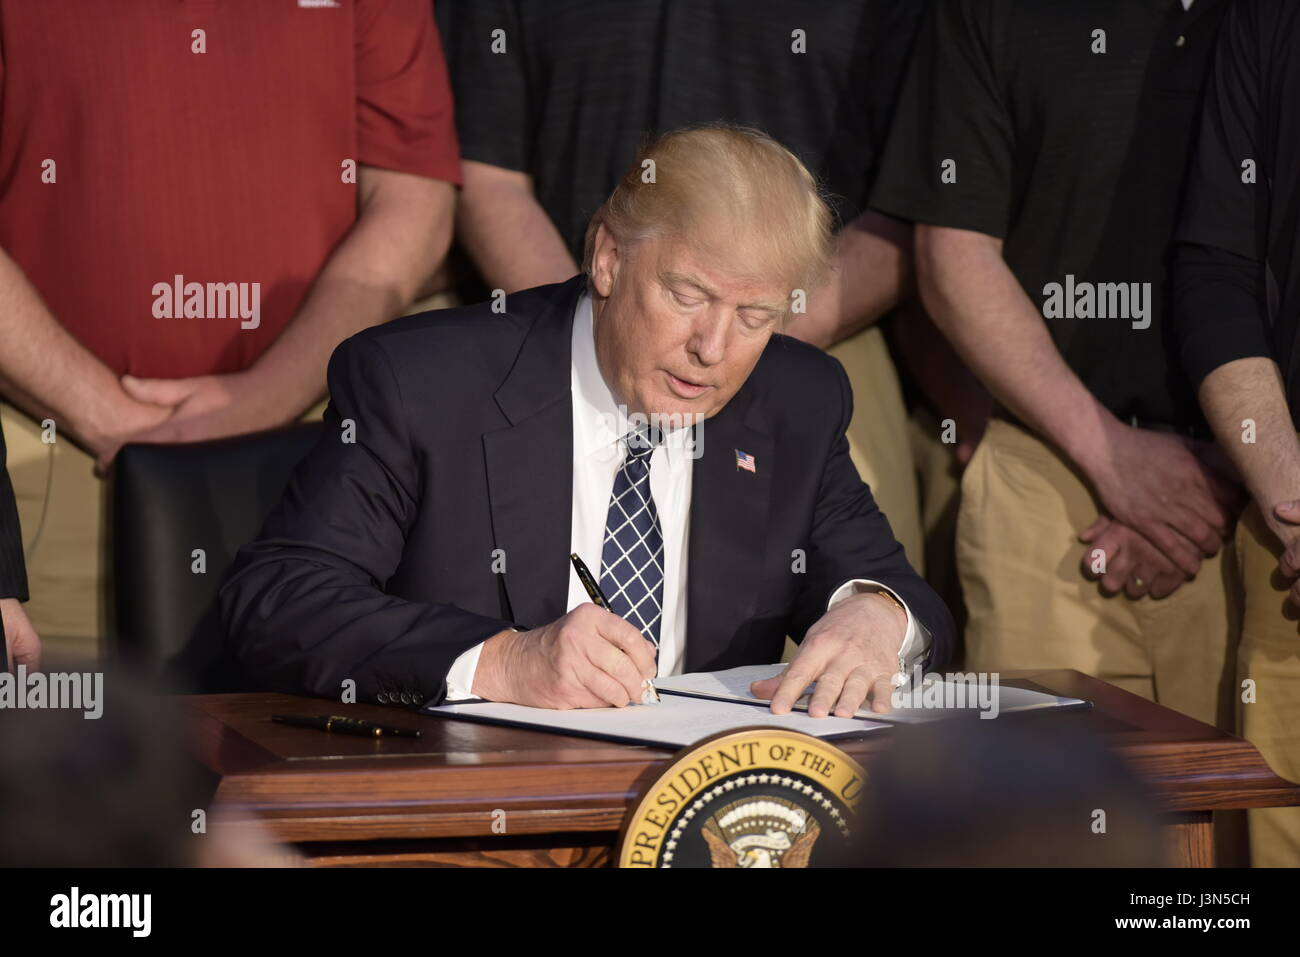 U.S. President Donald Trump signs an Executive Order repealing the Clean Power Plan during a ceremony at the Environmental - Stock Image